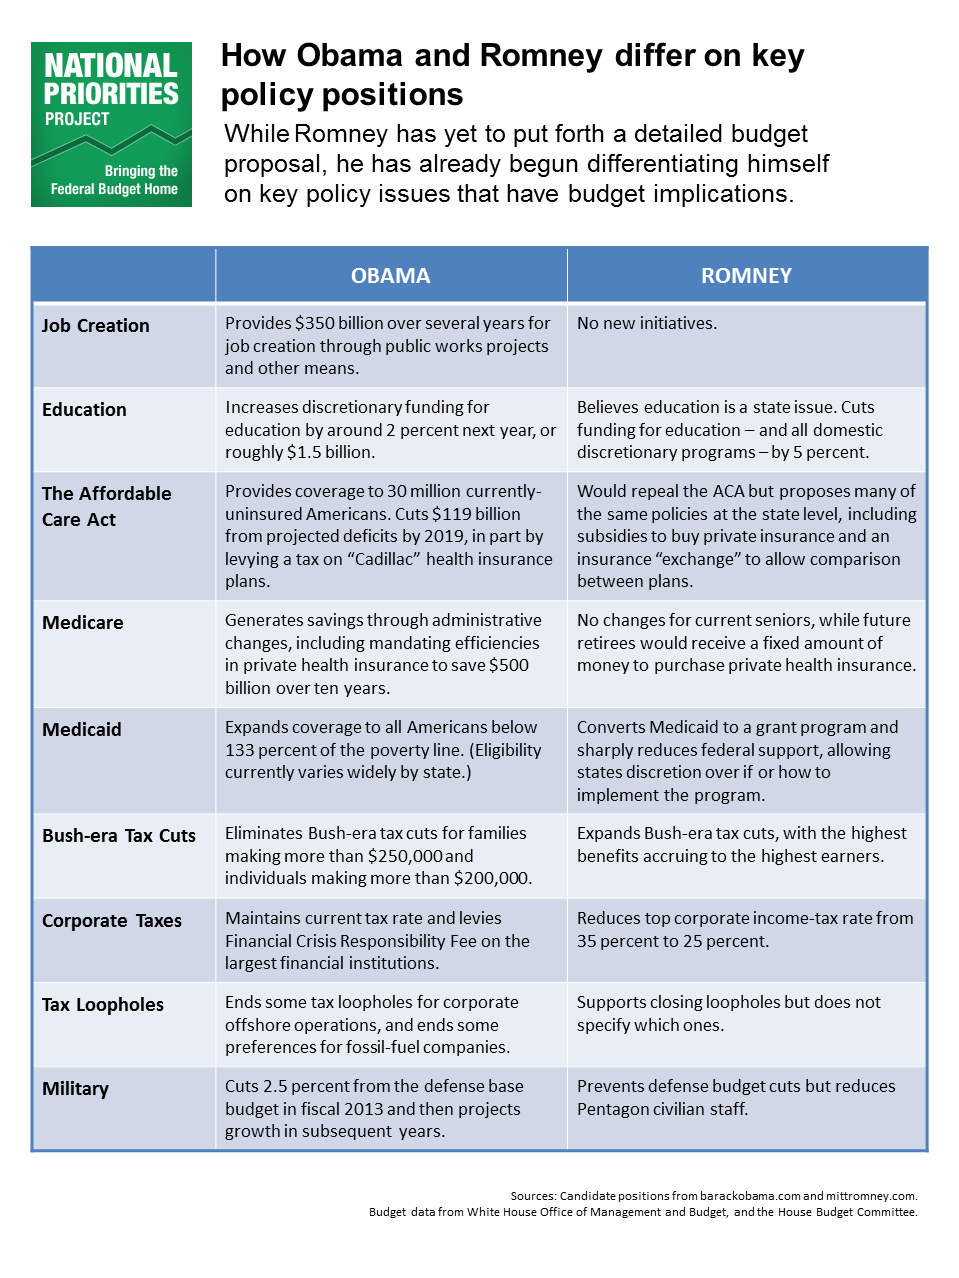 Handy chart comparing obama s and rmoney s positions on issues